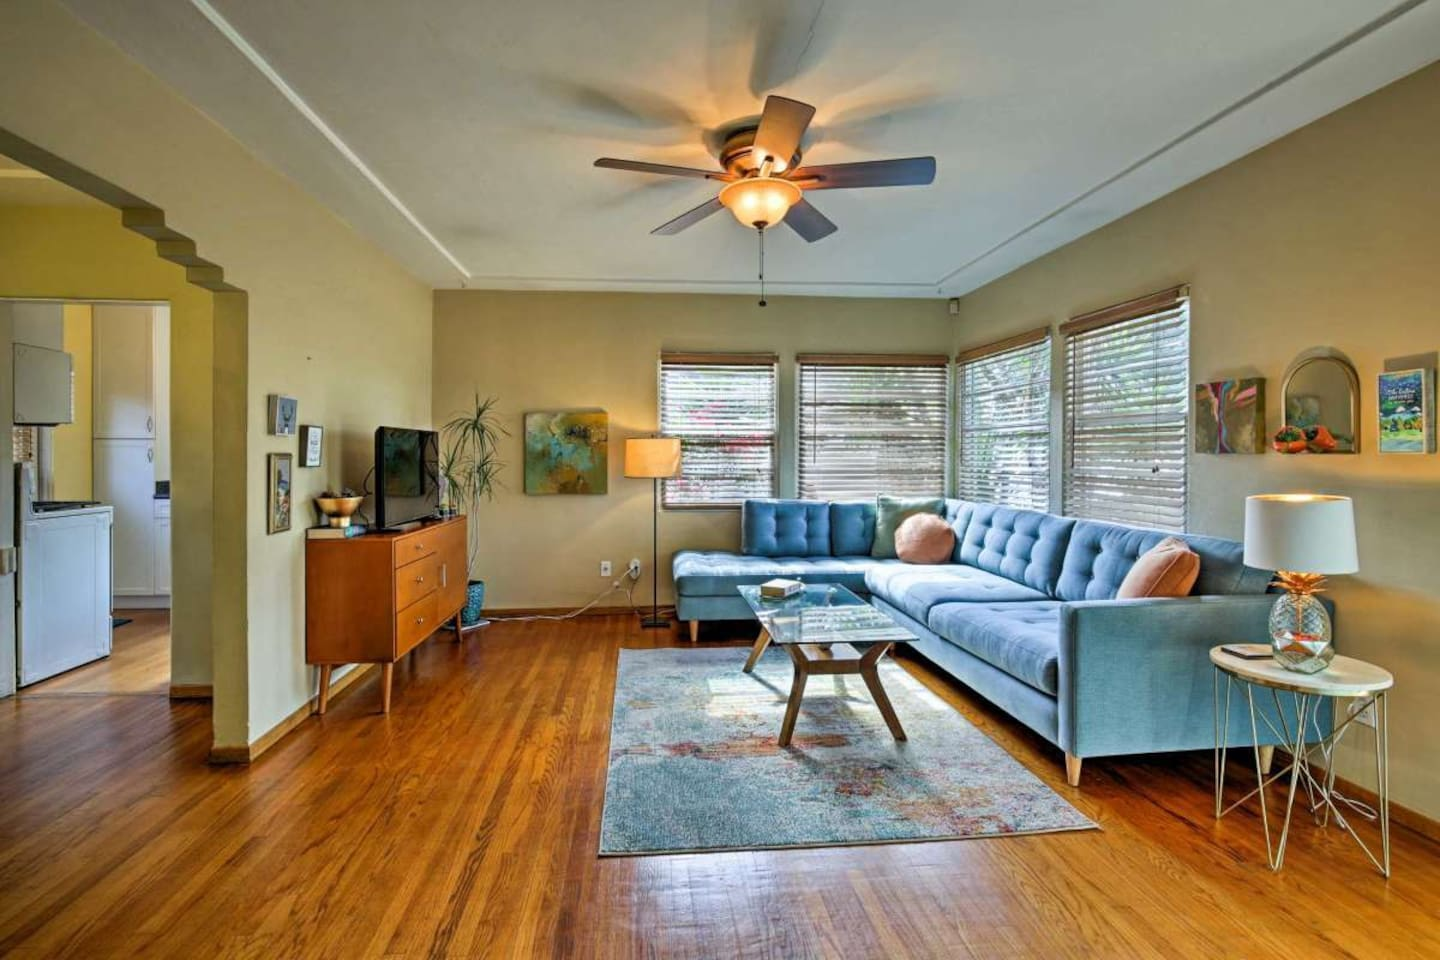 Lounge in the mid-century modern living space in this charming early 1900's house.